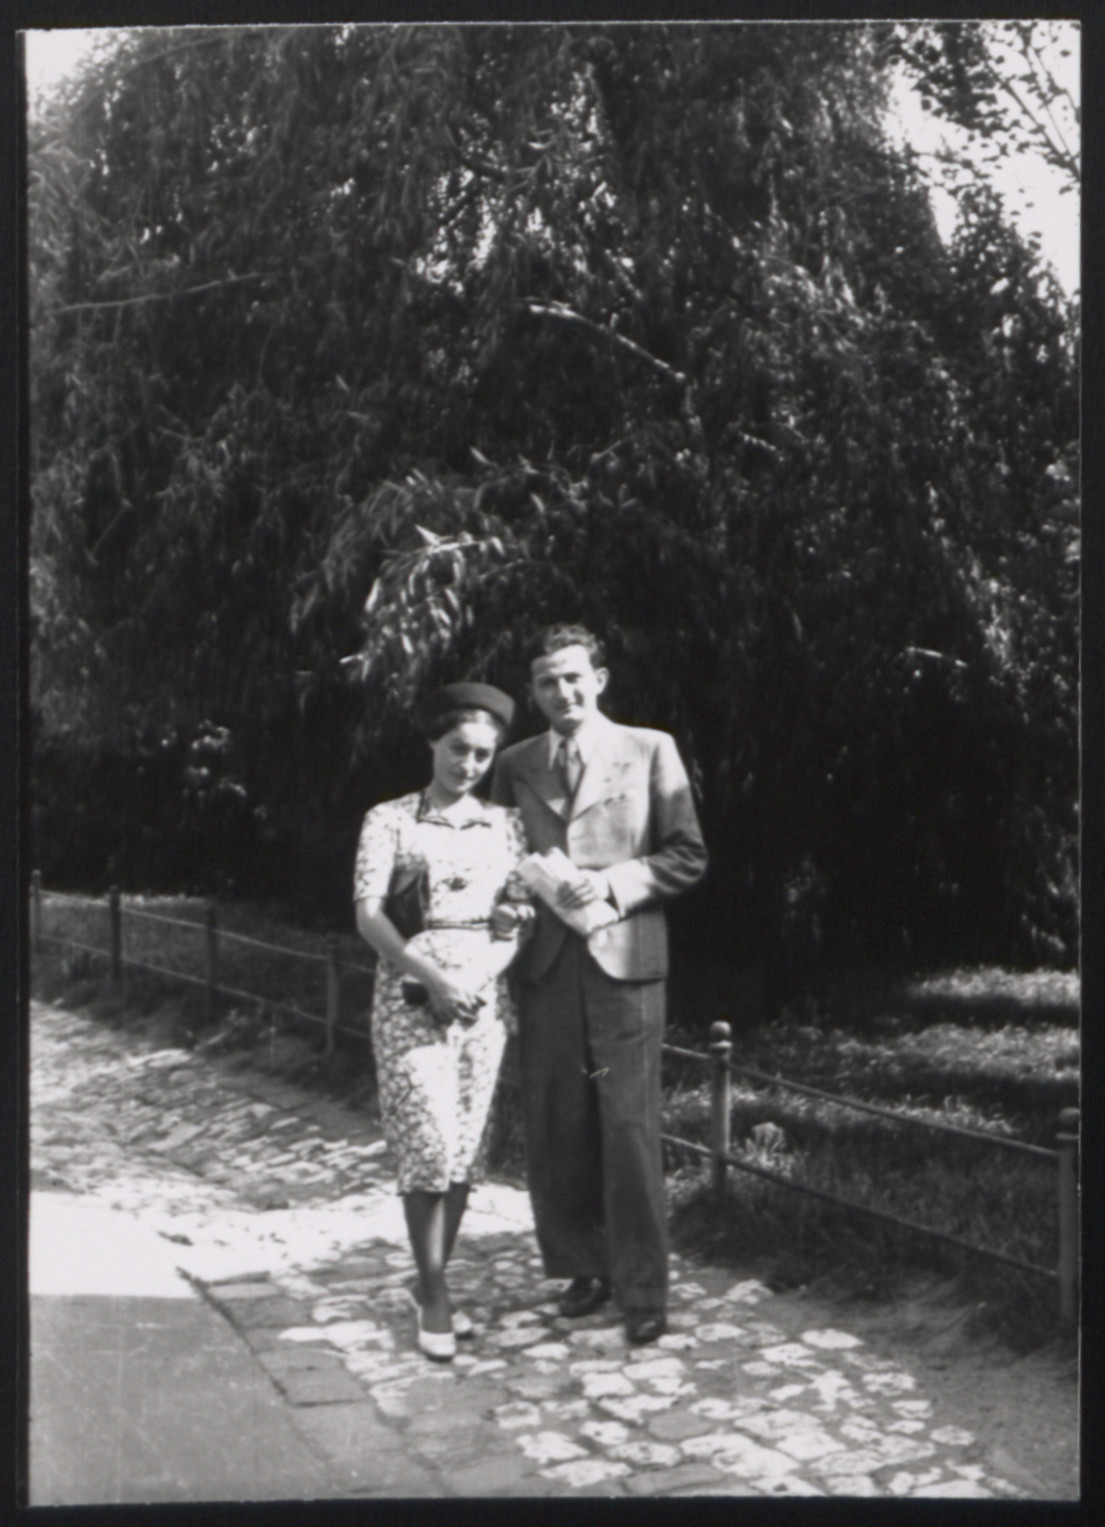 Portrait of the donor's parents who married on the 30th of August 1939, the day before World War II broke out.  Pictured are Eda and Salek Kuenstler.